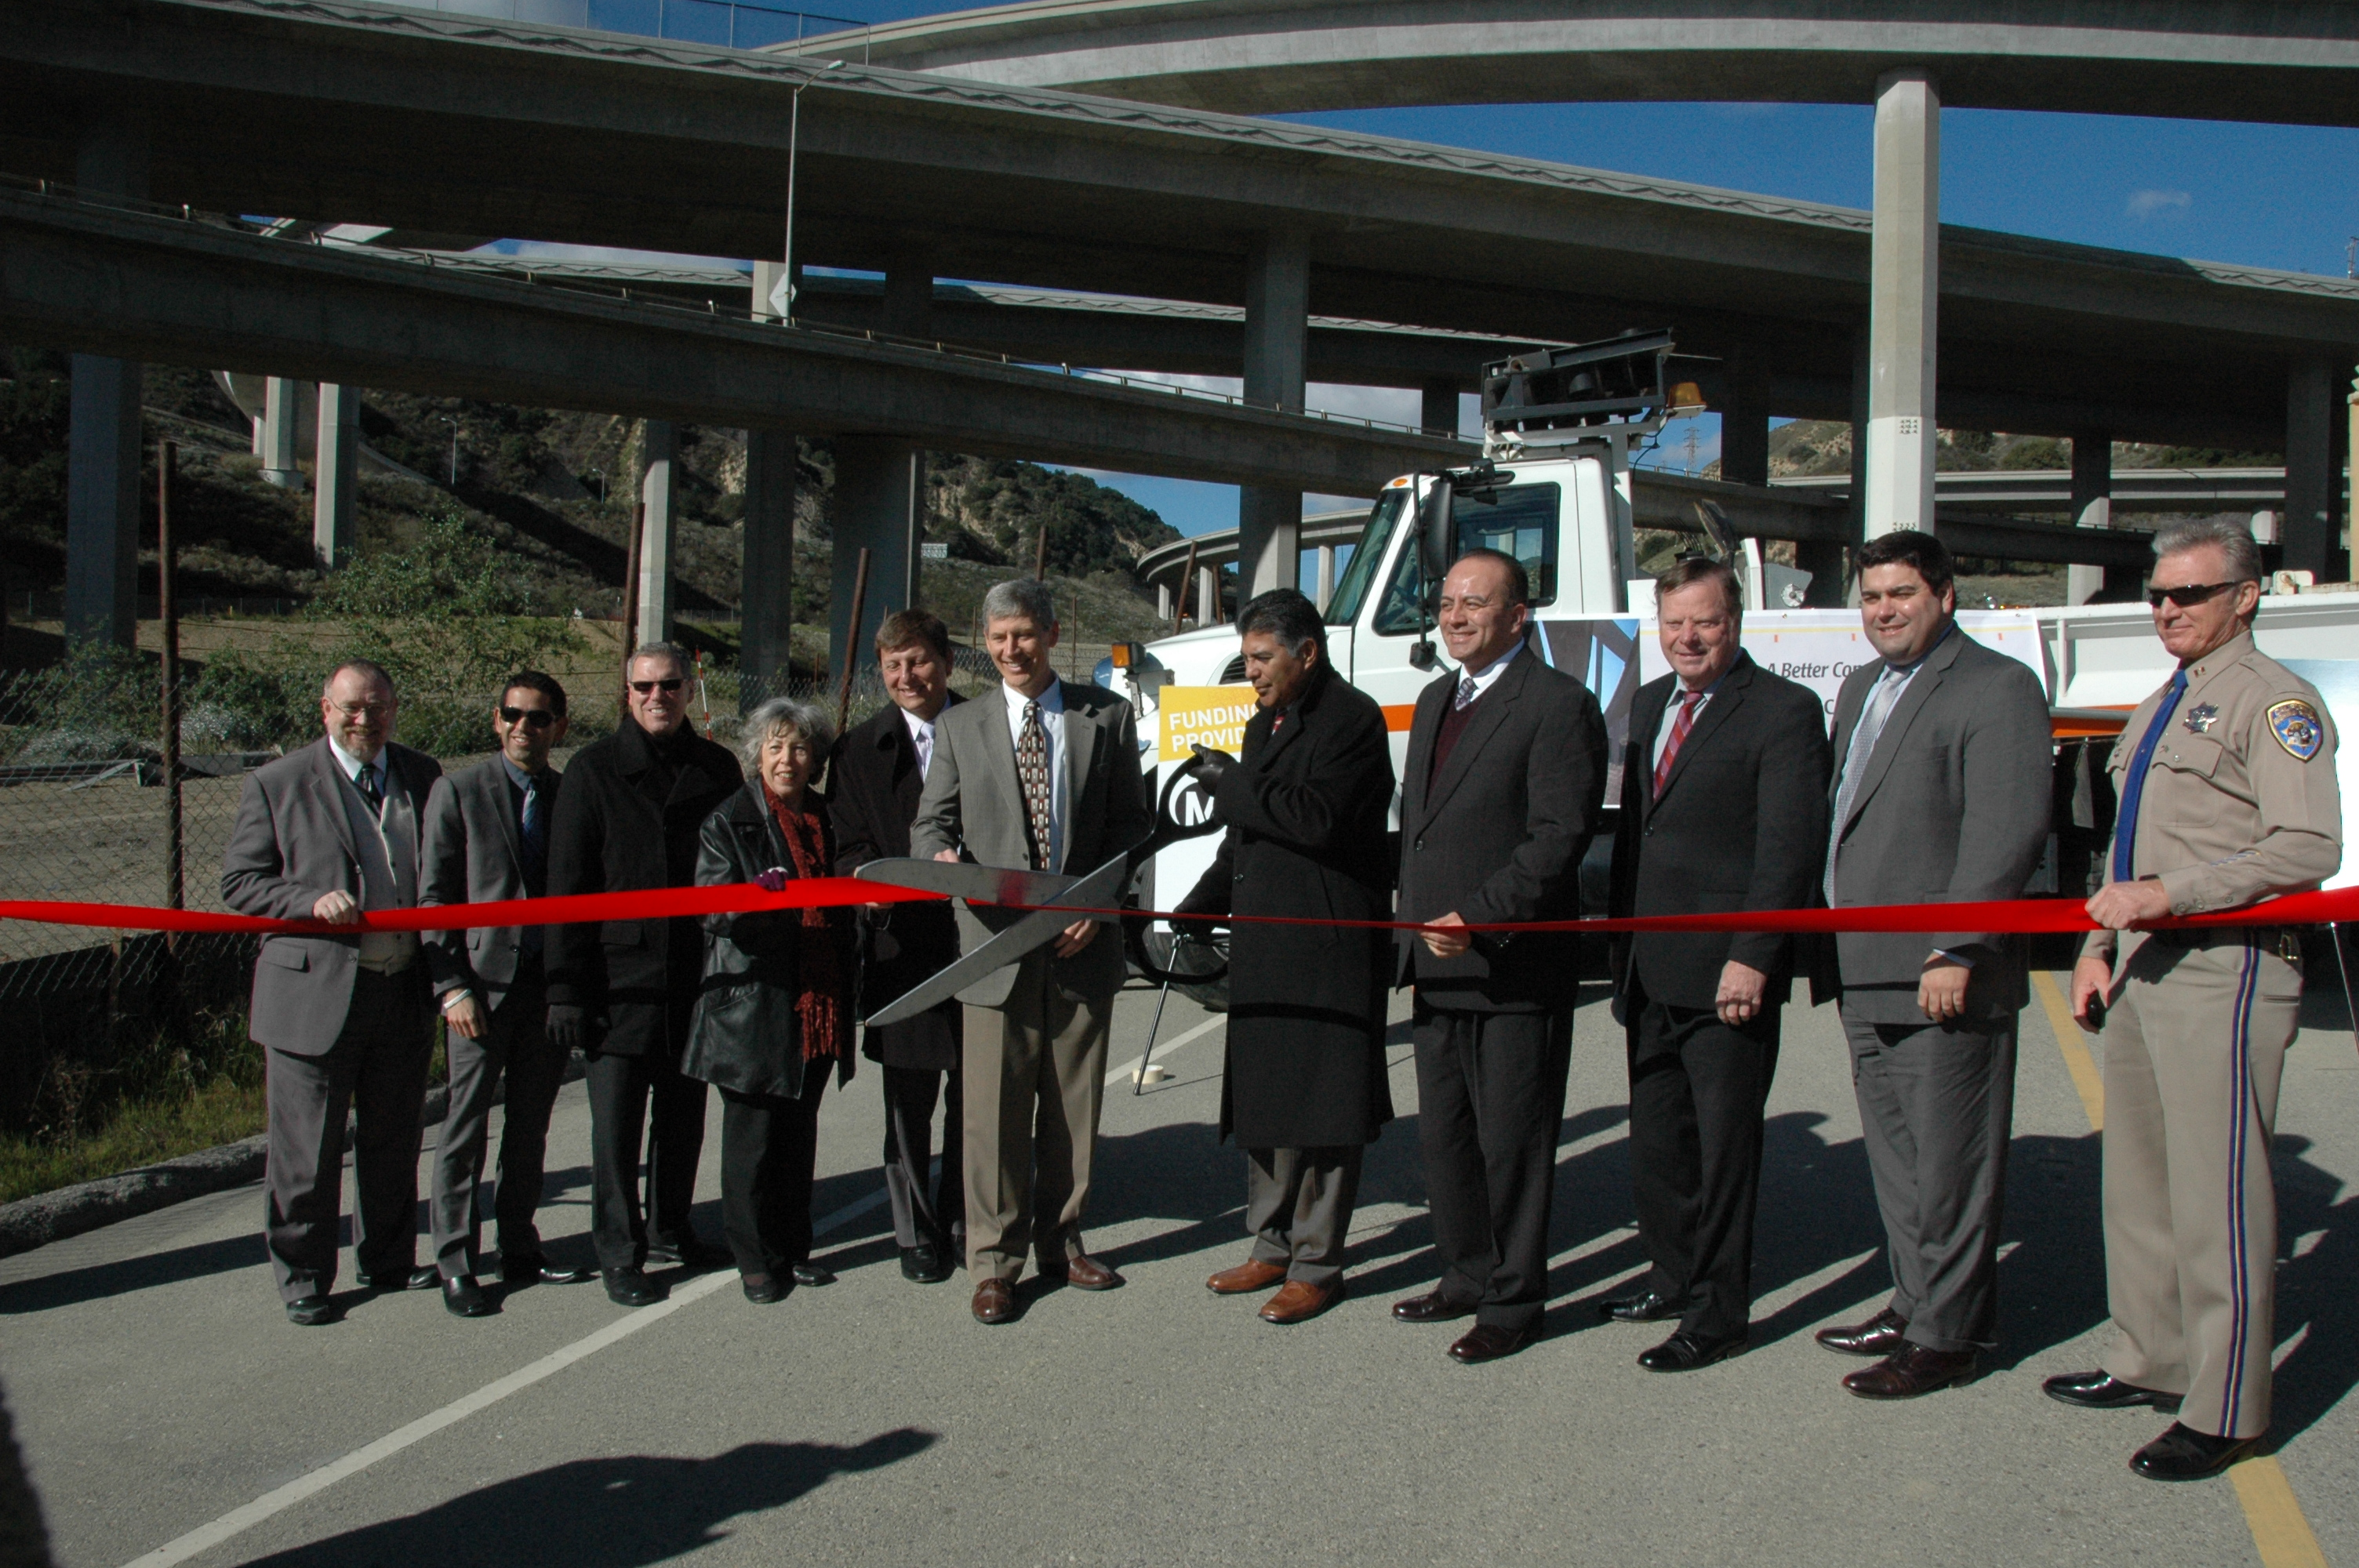 Officials cut the ribbon on the new HOV connector this morning. Rep. Tony Cardenas is holding the scissors. Photos by Luiz Inzunza/Metro.